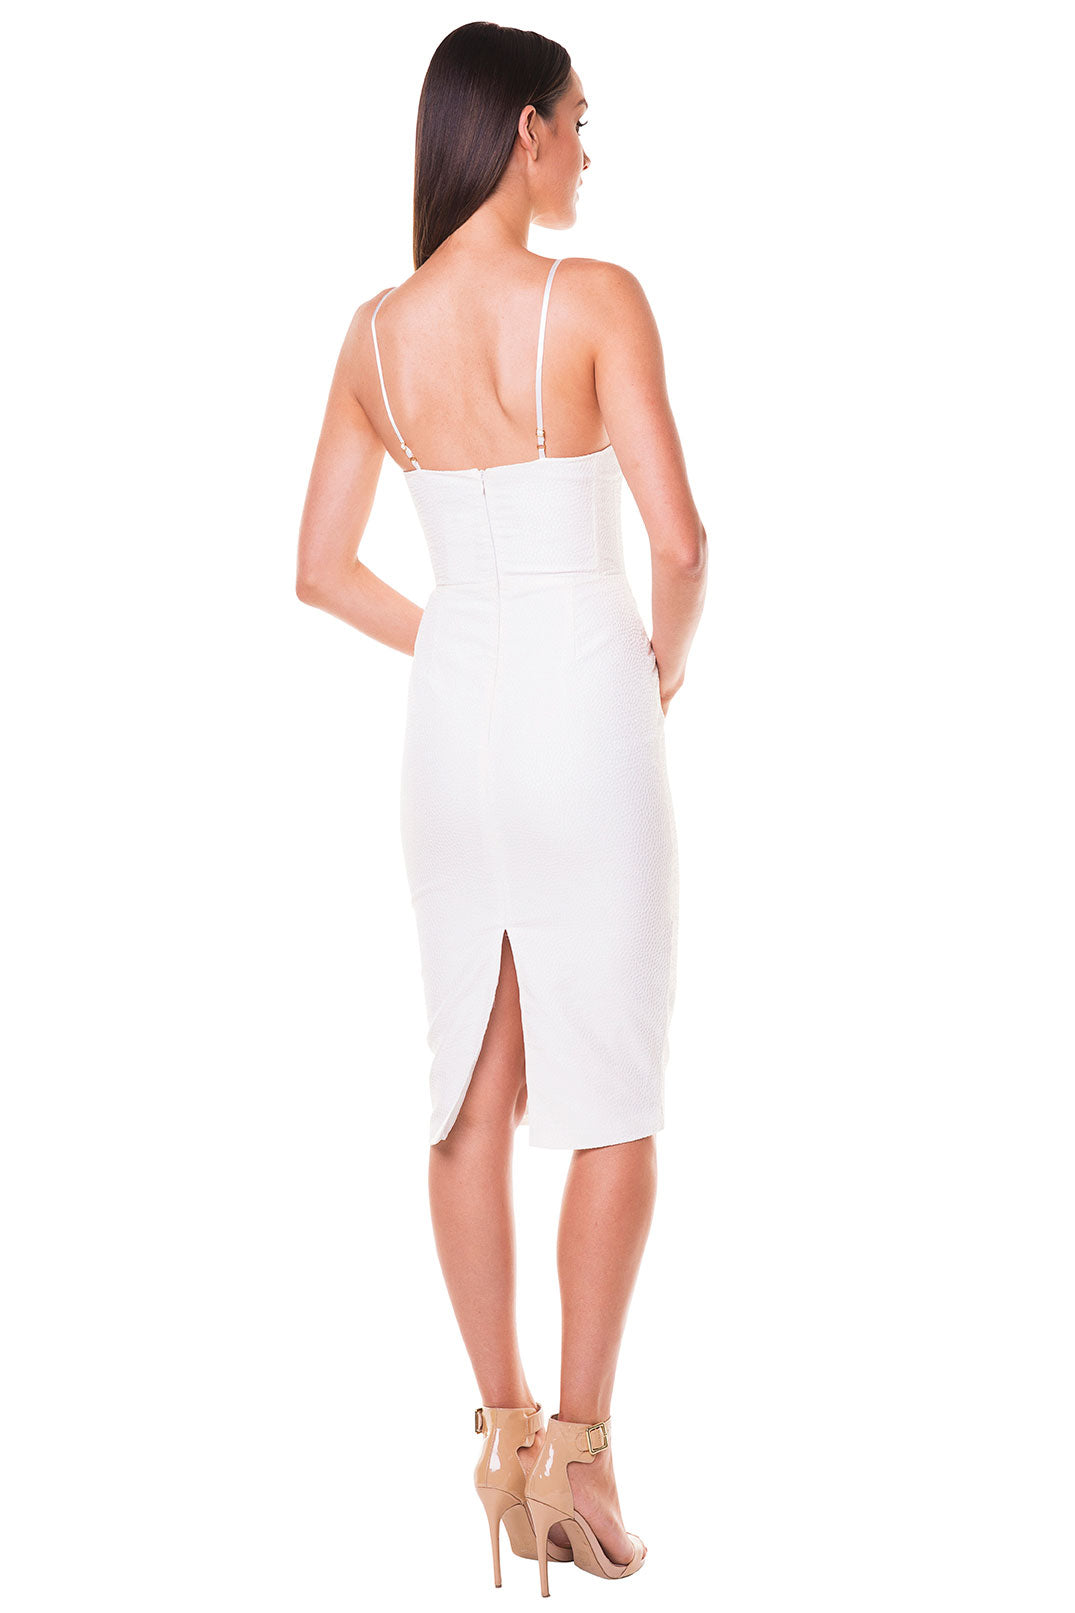 Caterina Bustier Dress - White